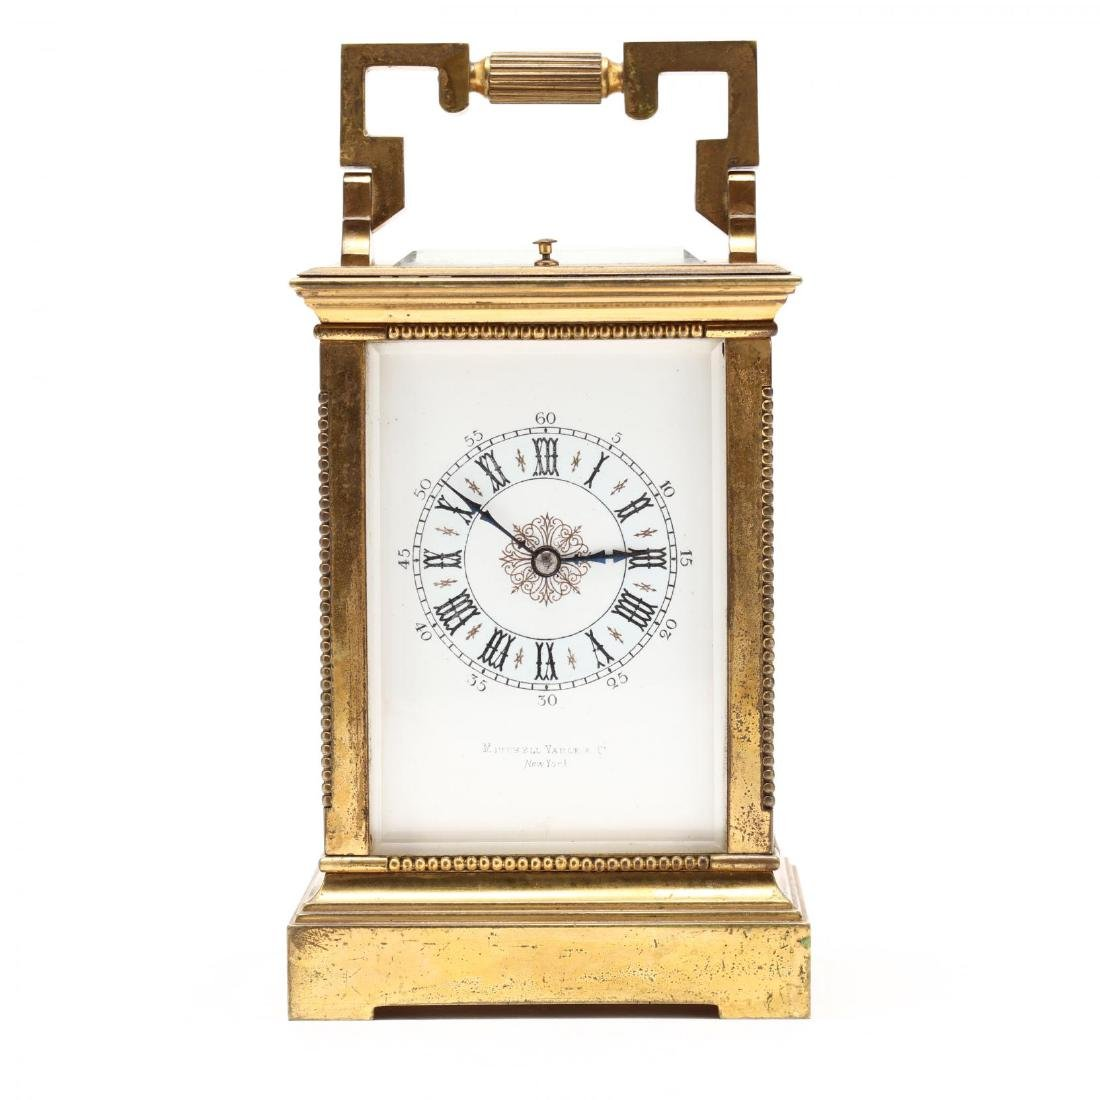 Mitchell Vance & Co., Gilt Bronze Carriage Clock - 7